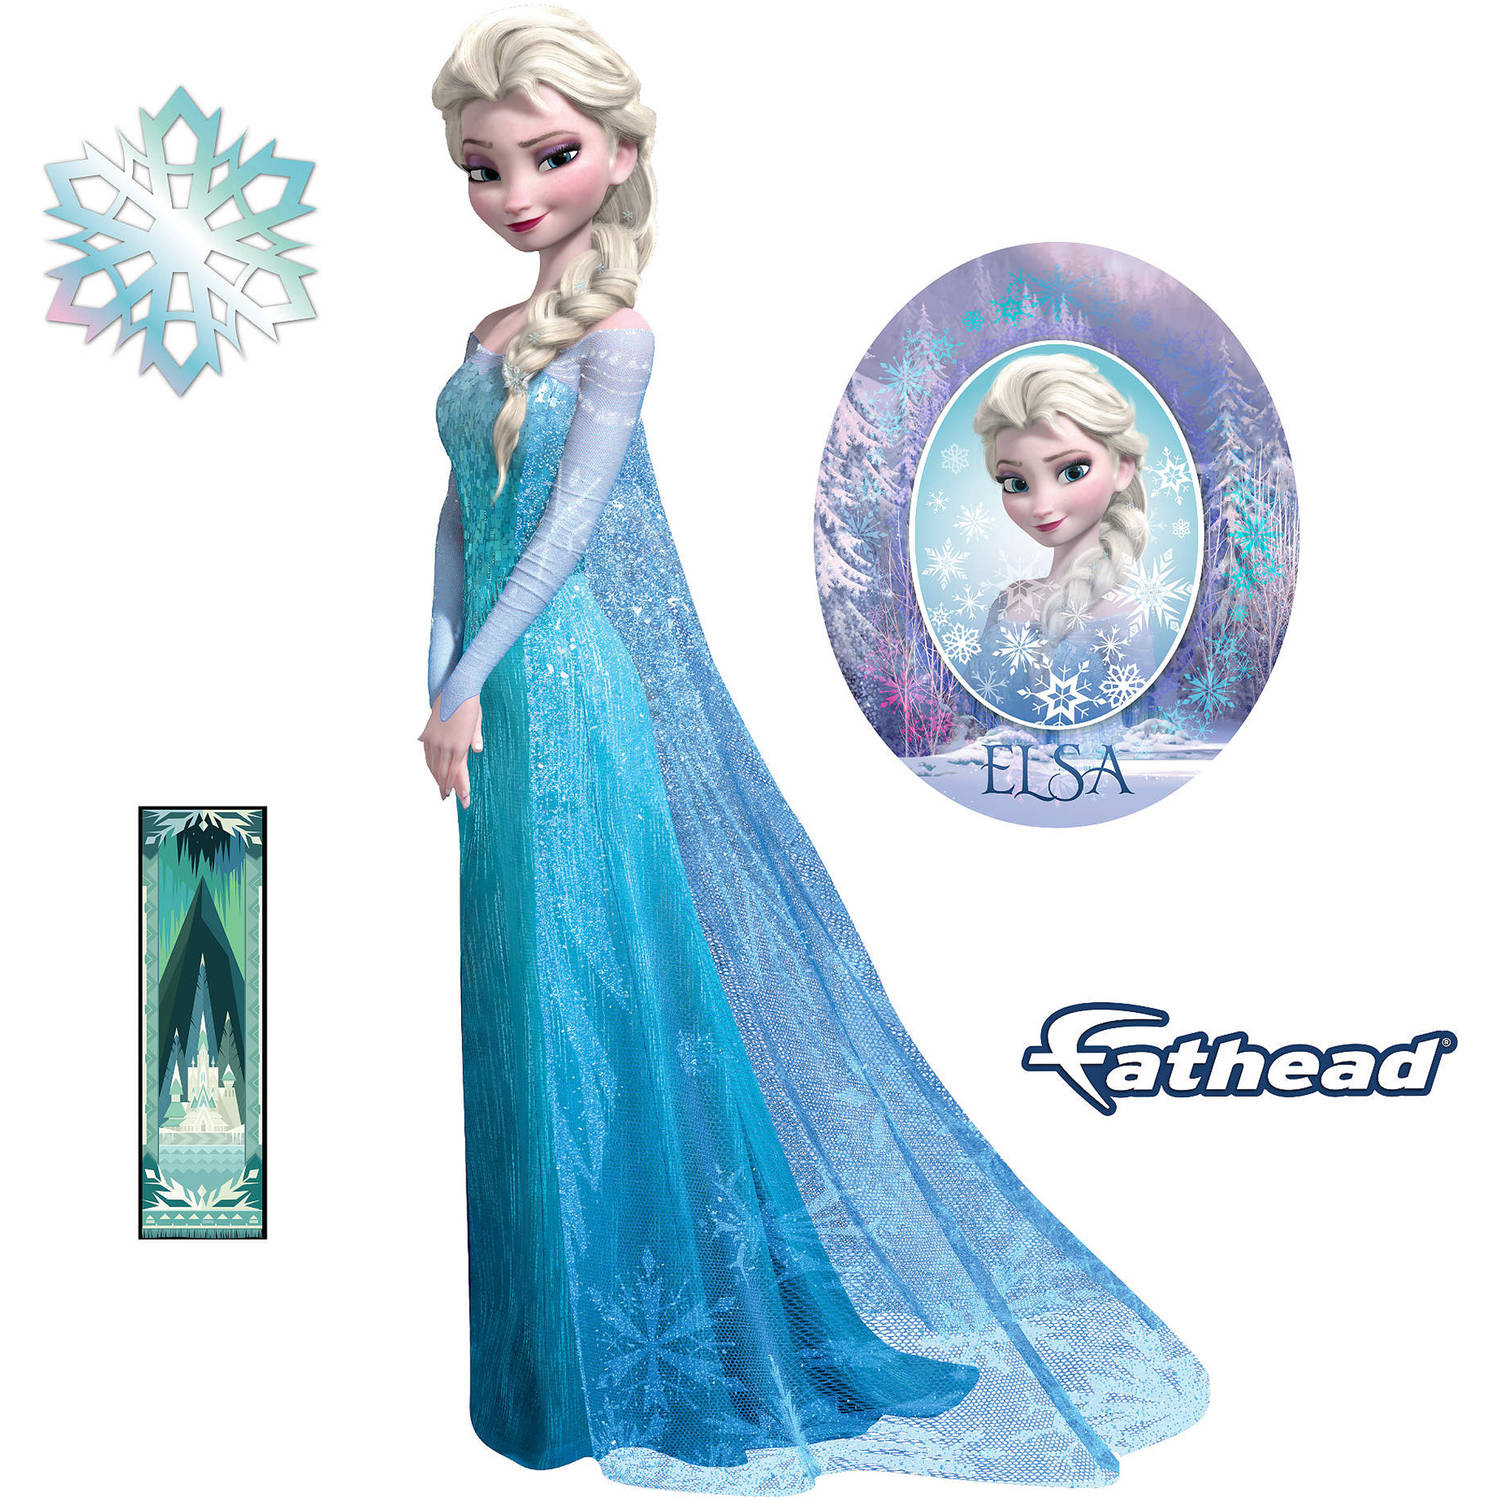 Disney Frozen Elsa Teammate Player Retail 6-Pack 89-01850